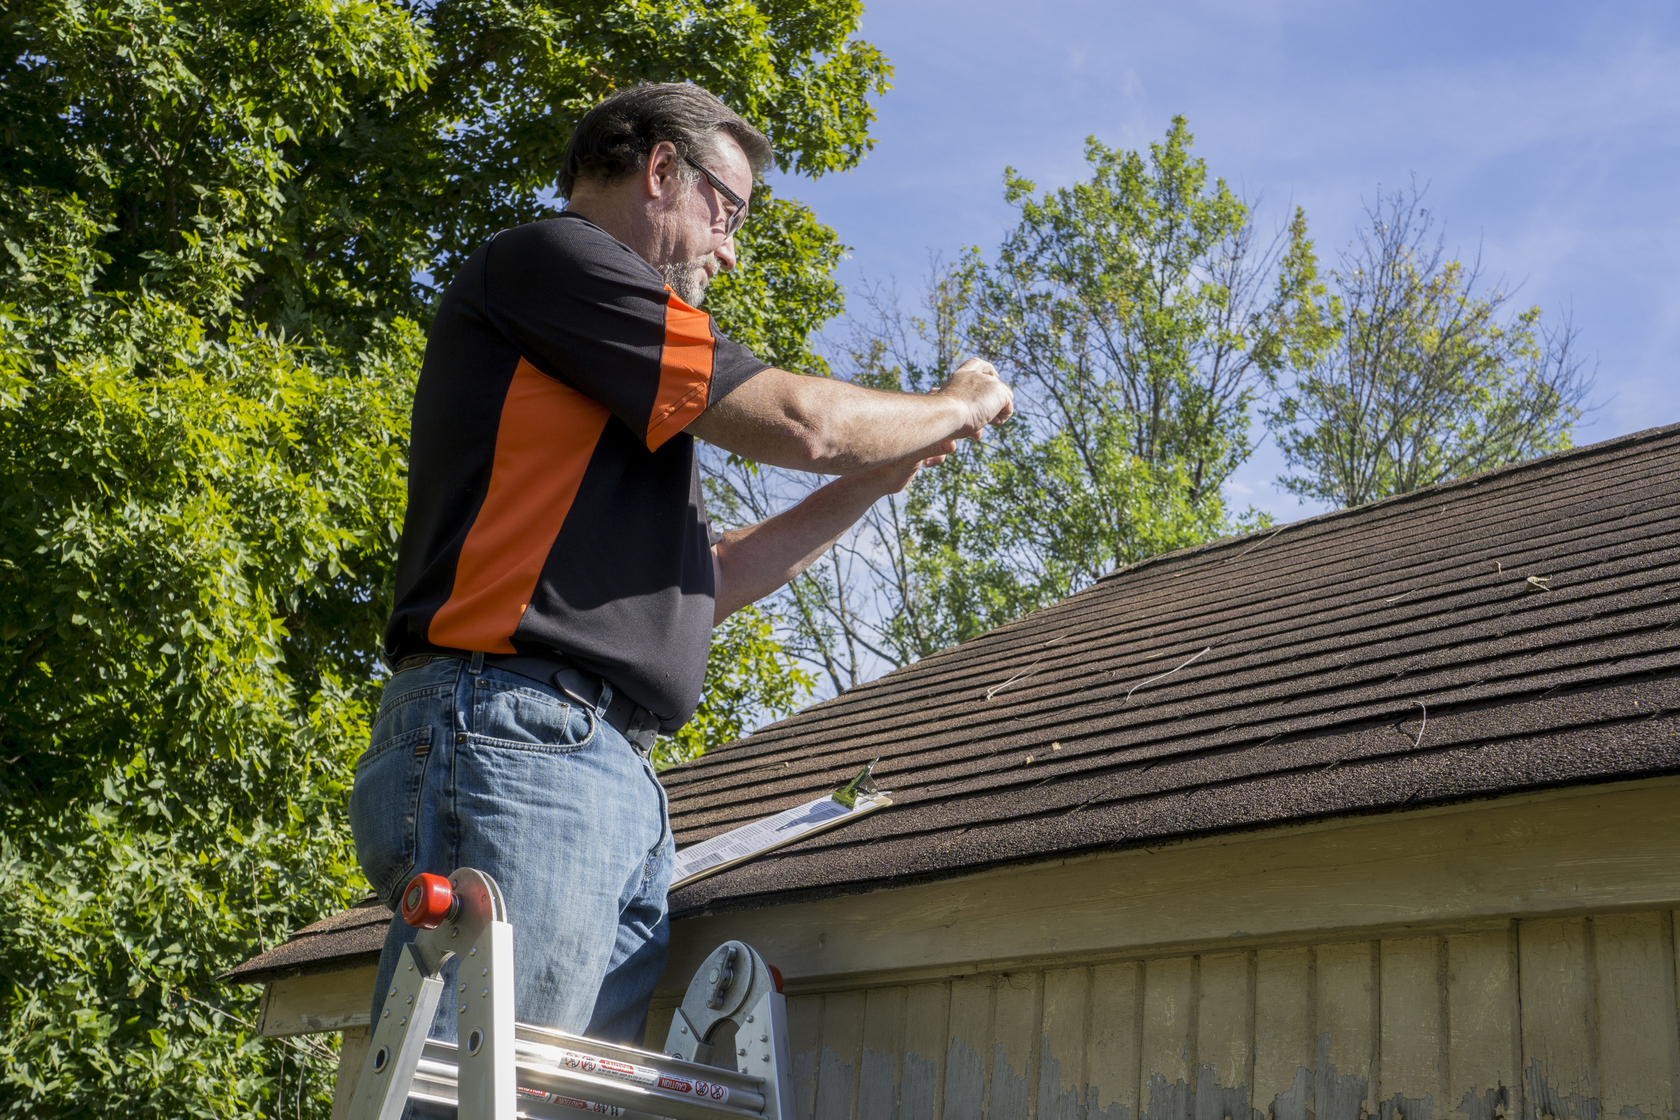 The Crucial Steps You Need to Follow to Keep Your Roof in Good Condition